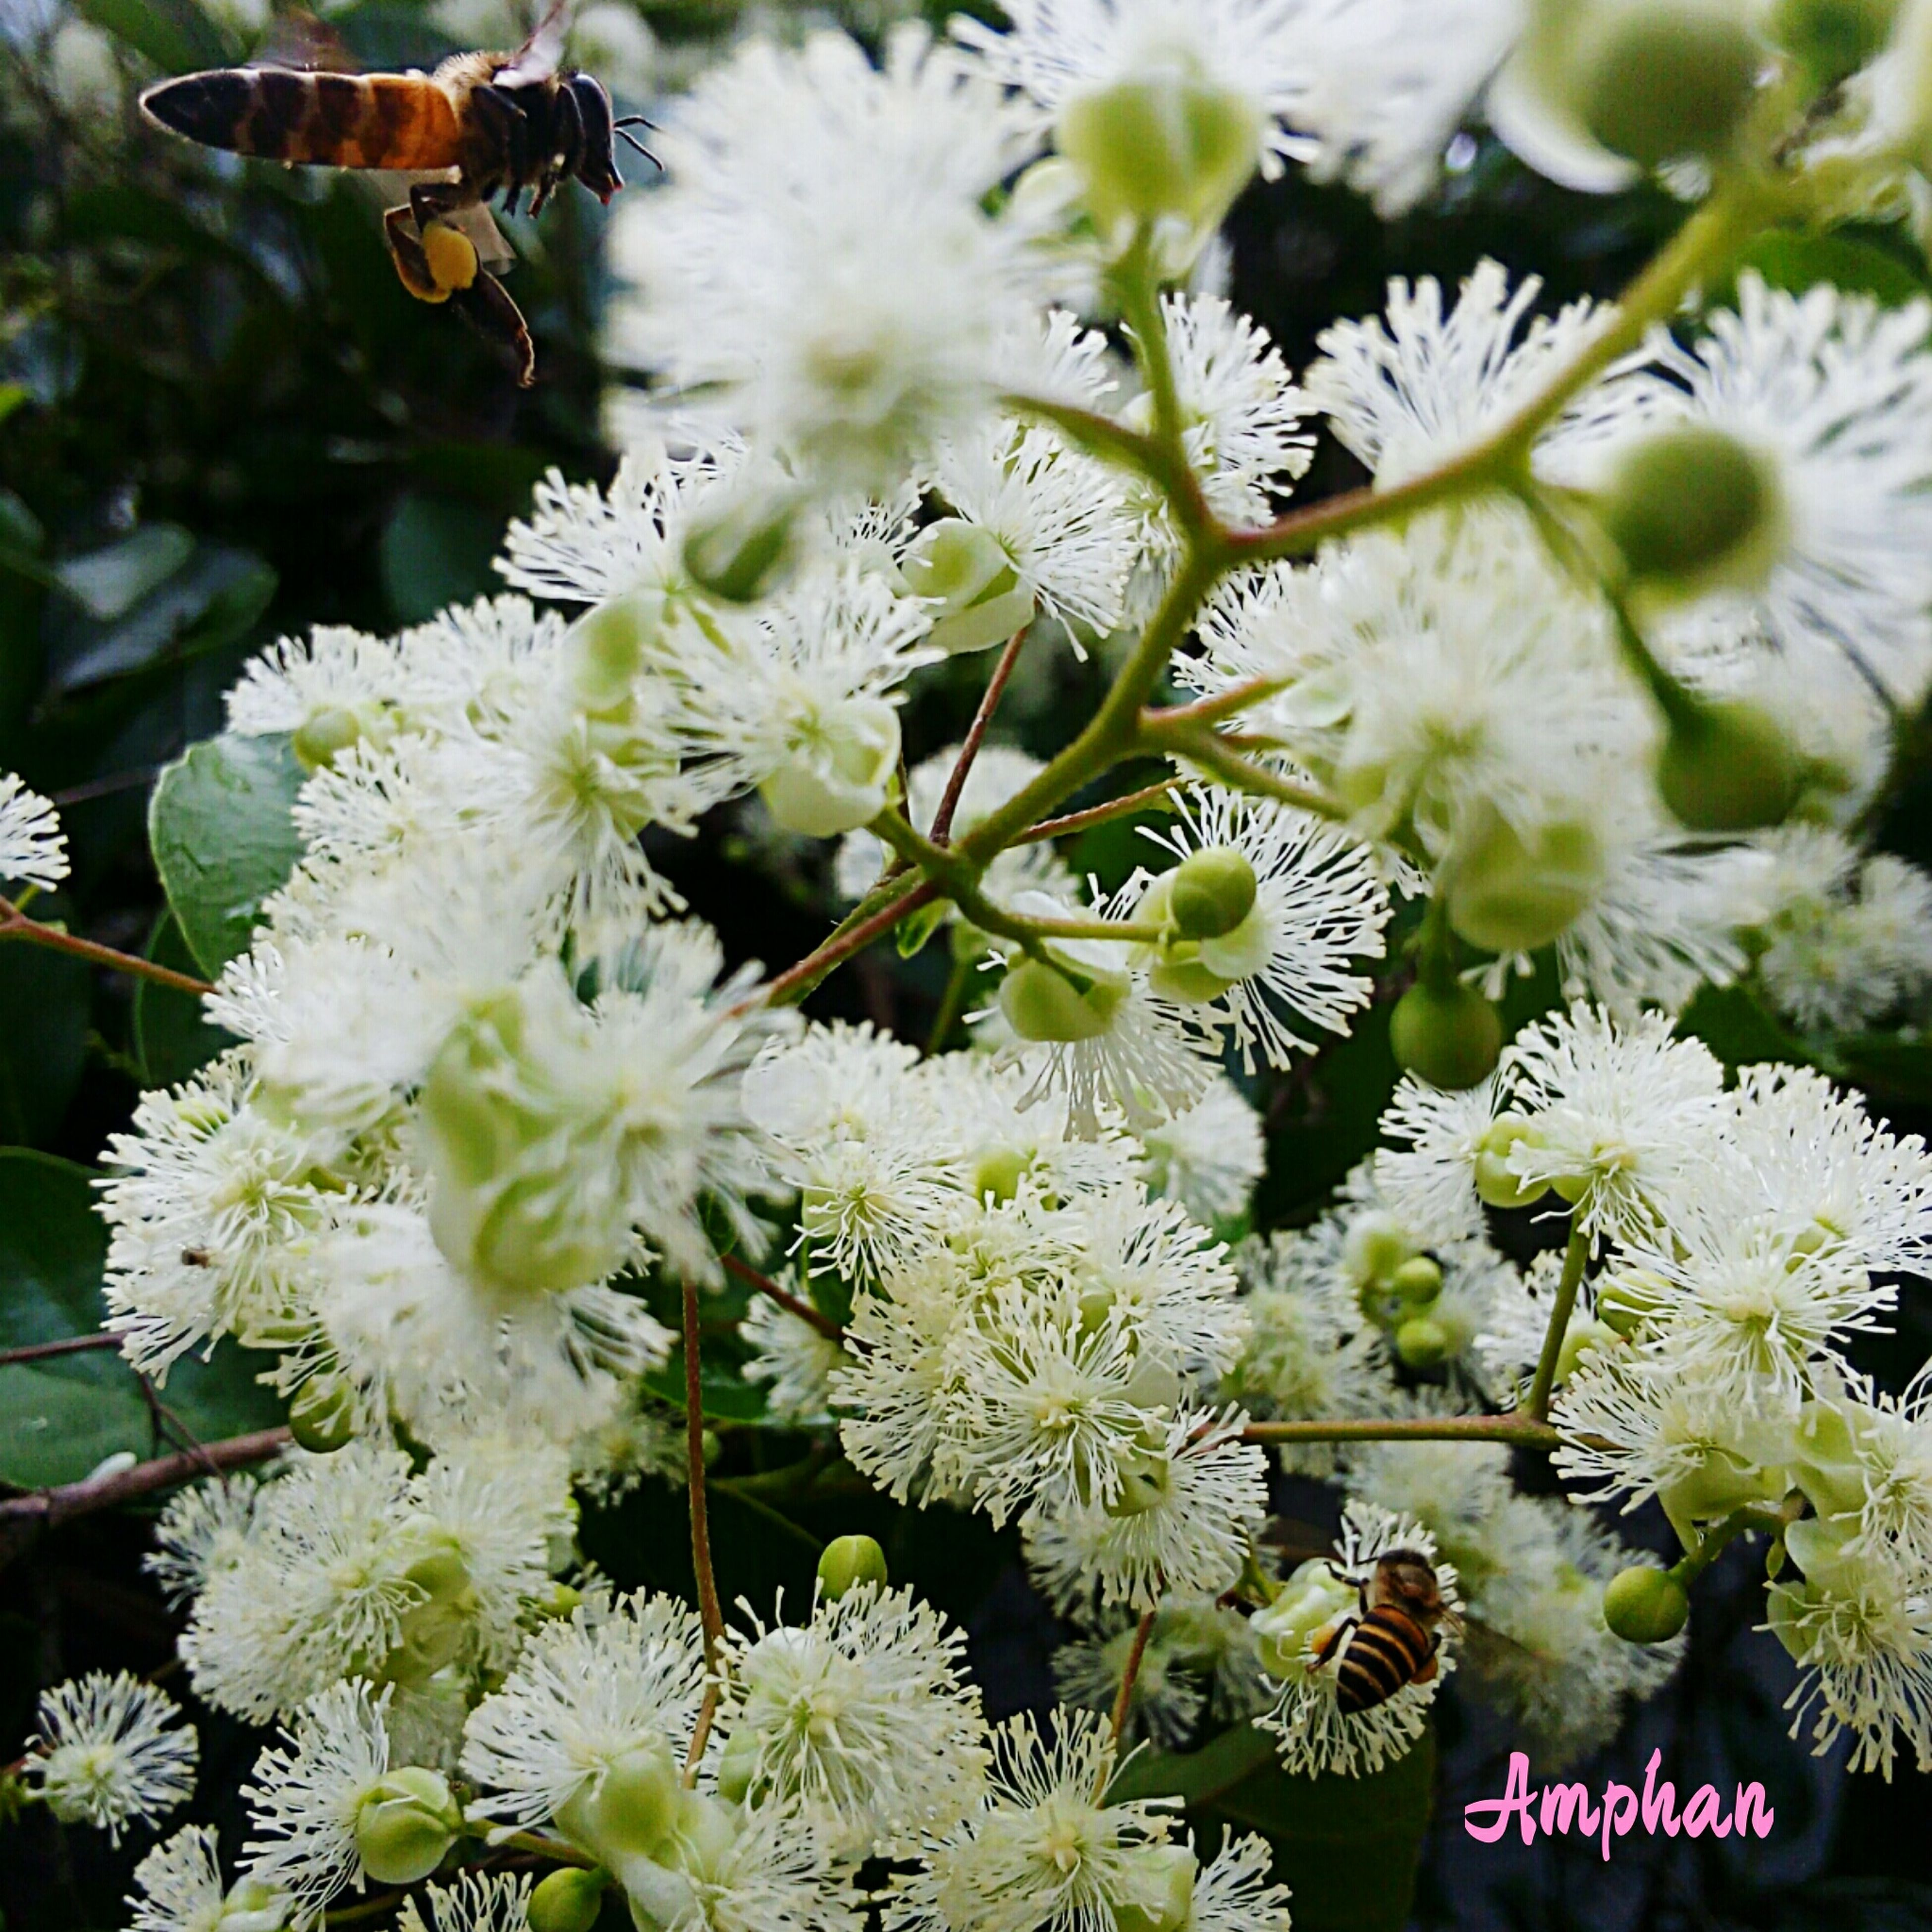 flower, growth, white color, freshness, plant, nature, beauty in nature, leaf, fragility, focus on foreground, close-up, blooming, day, tree, branch, outdoors, petal, no people, in bloom, green color